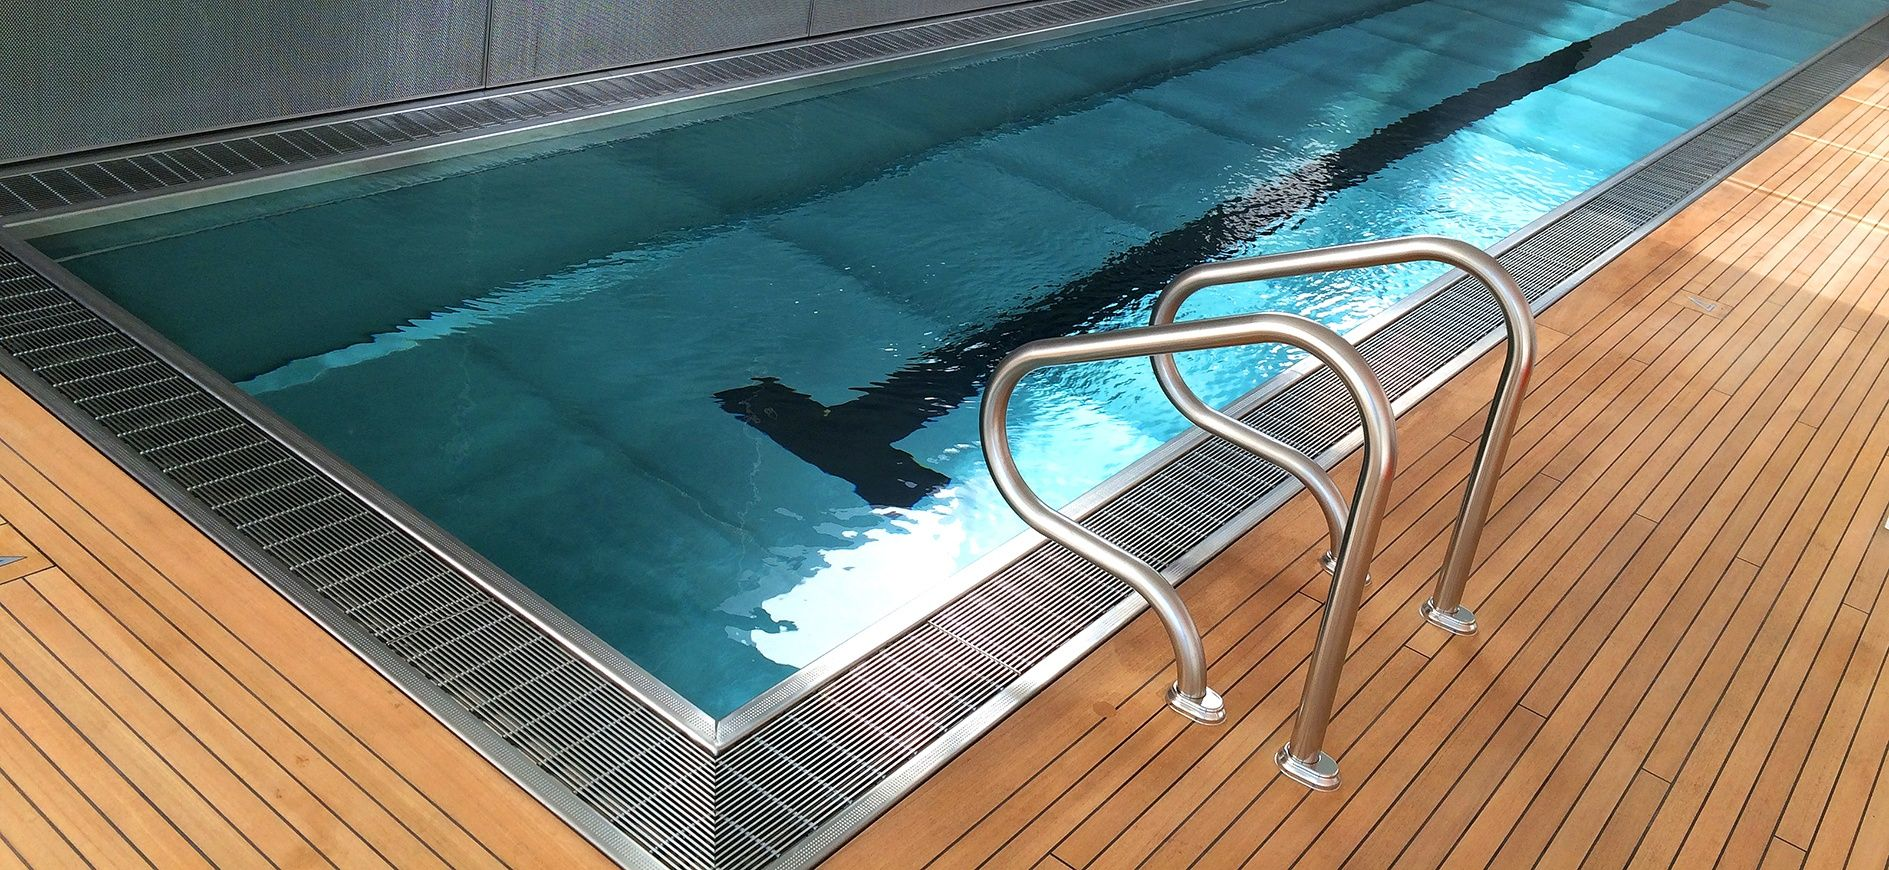 Top 5 Reasons Why A Continuous Perimeter Gutter System Should Be Included In A Competition Pool Or Recreational Pool Luxury Pools Indoor Pool Lap Pool Designs